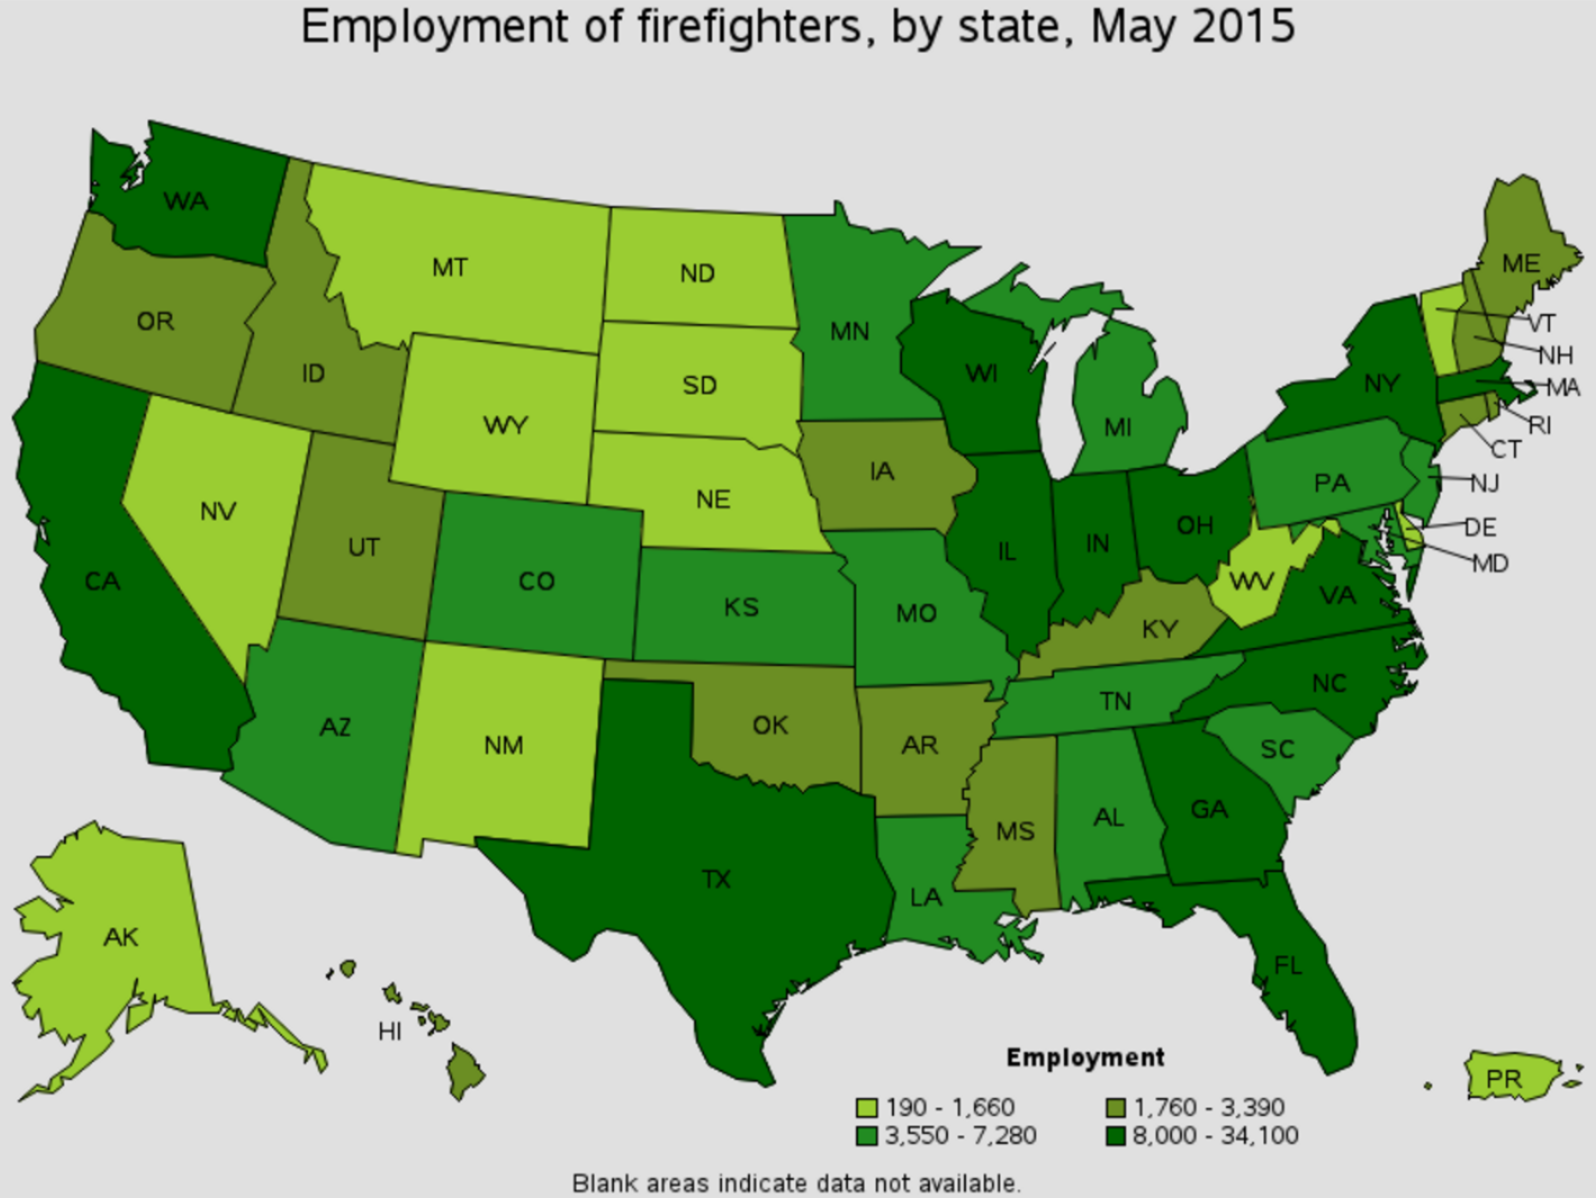 firefighter job outlook by state Liberty South Carolina